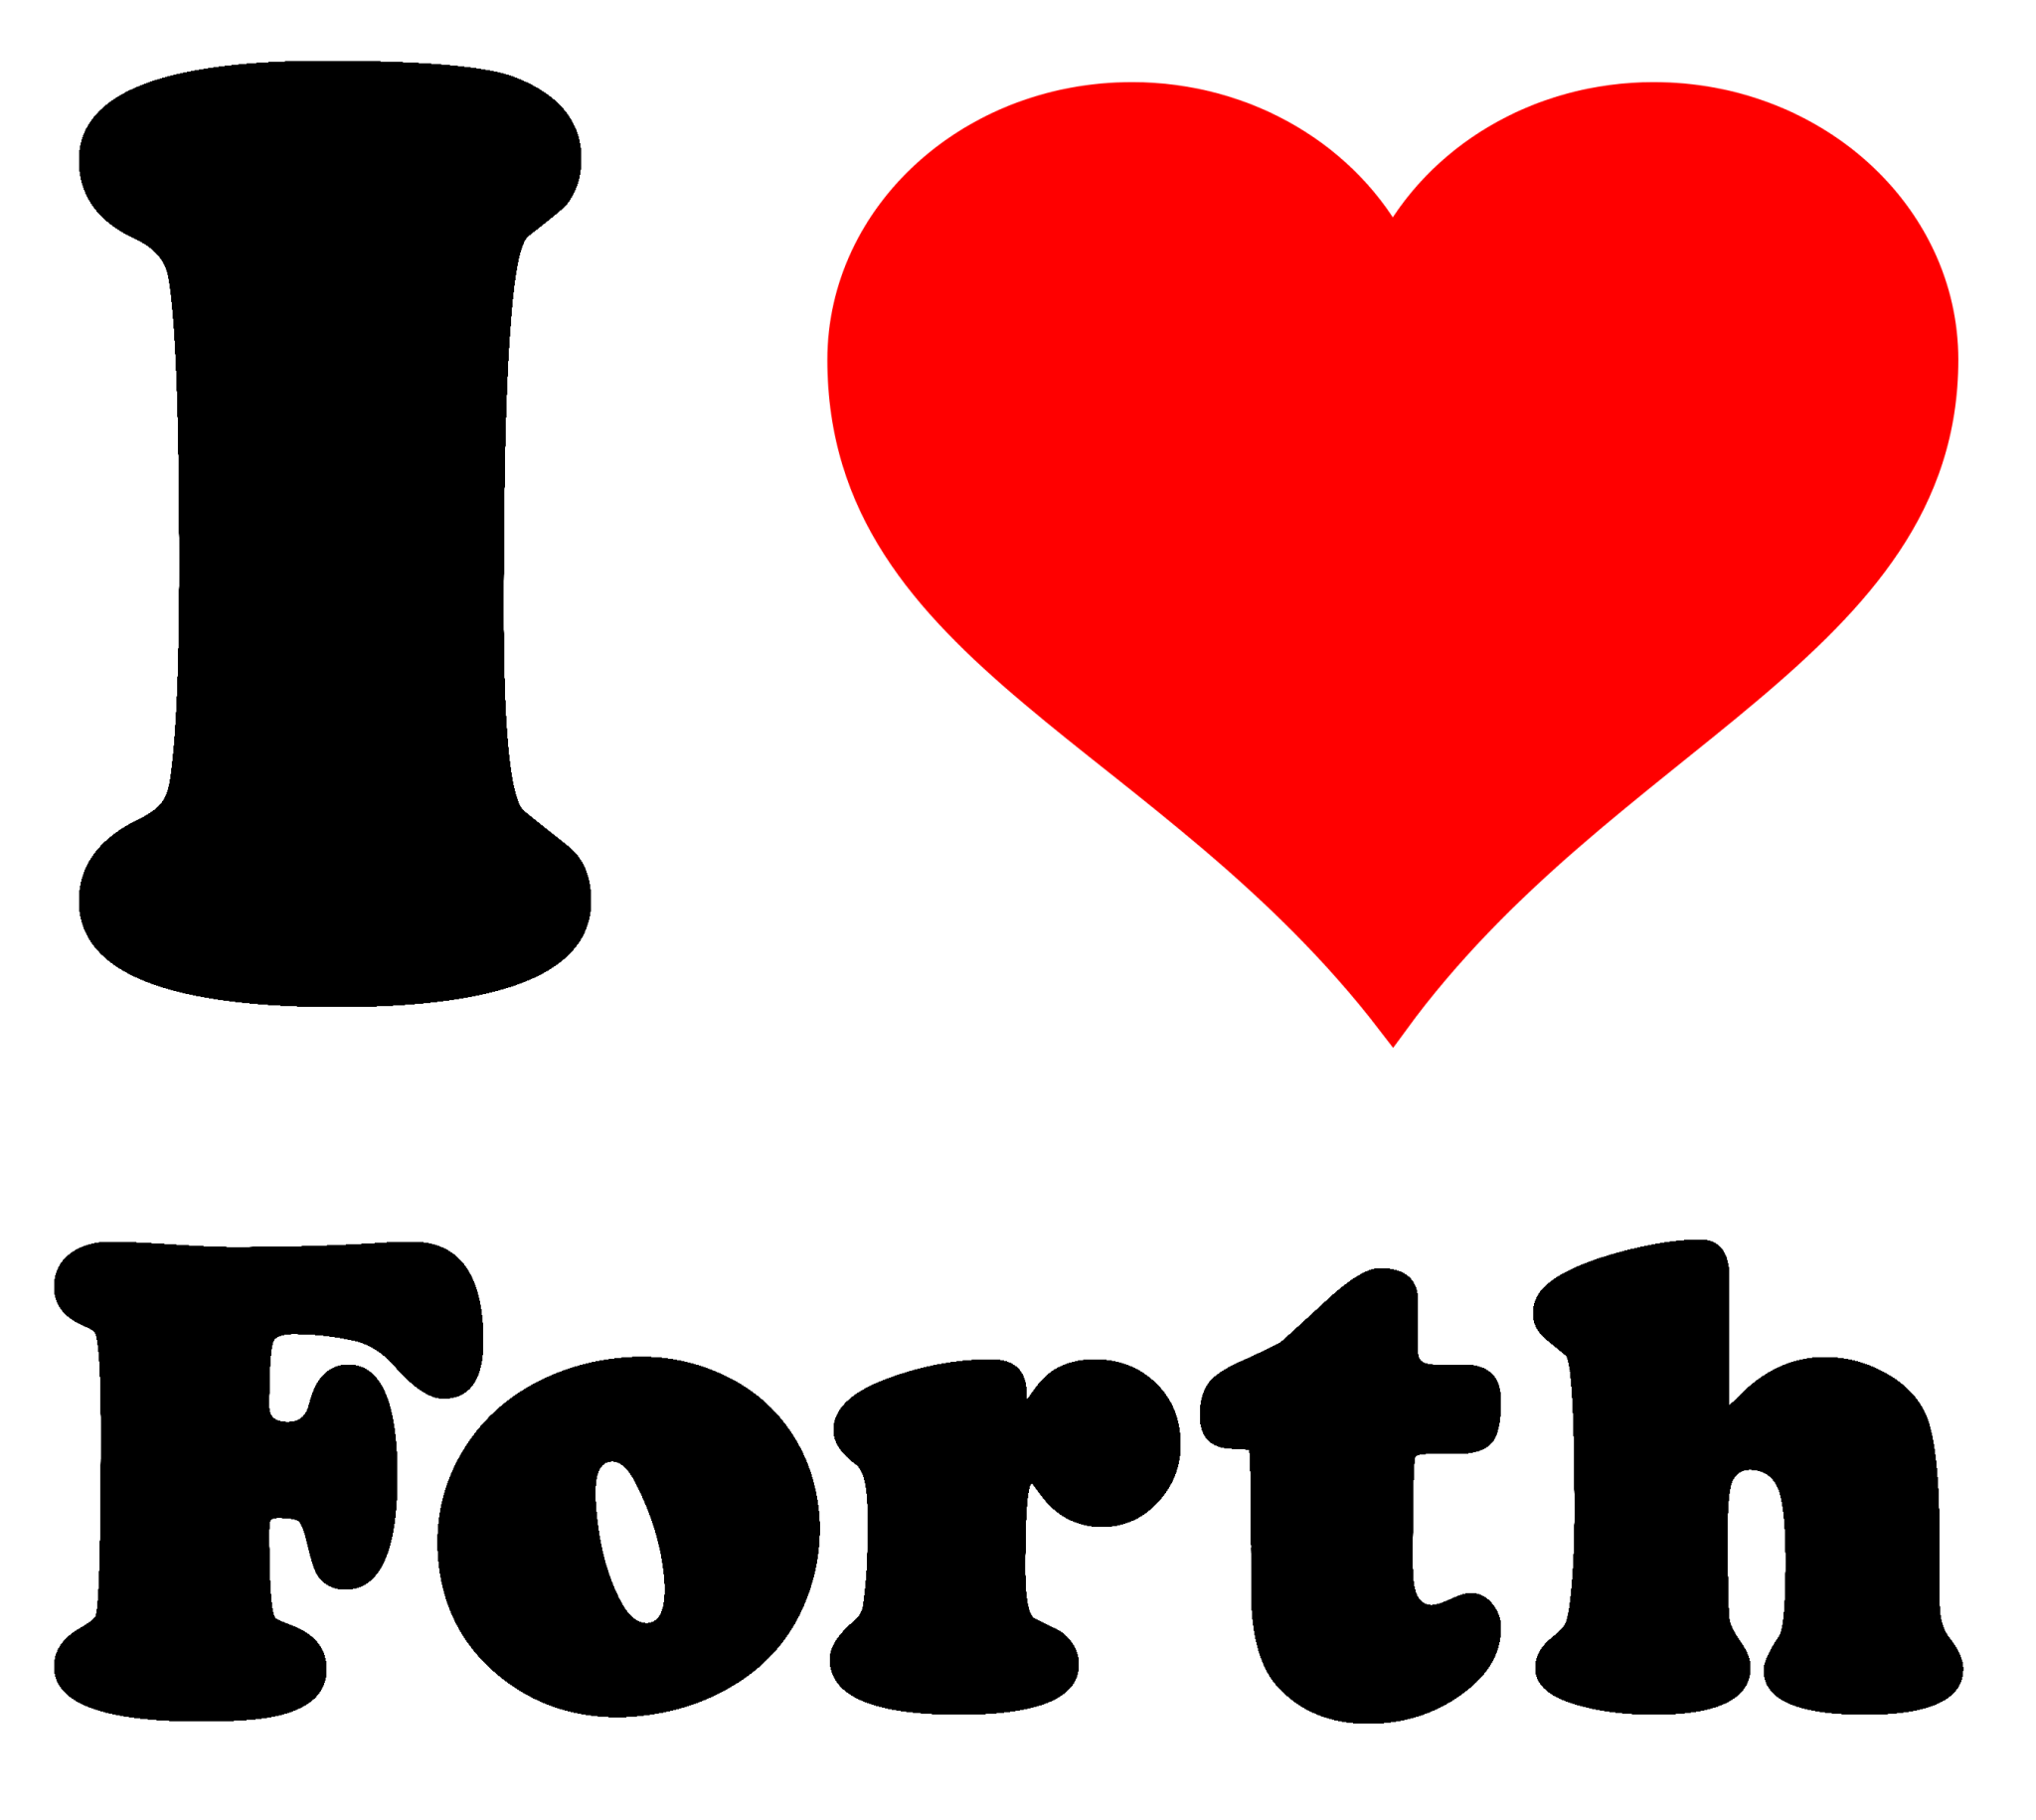 I heart Forth tee shirt design